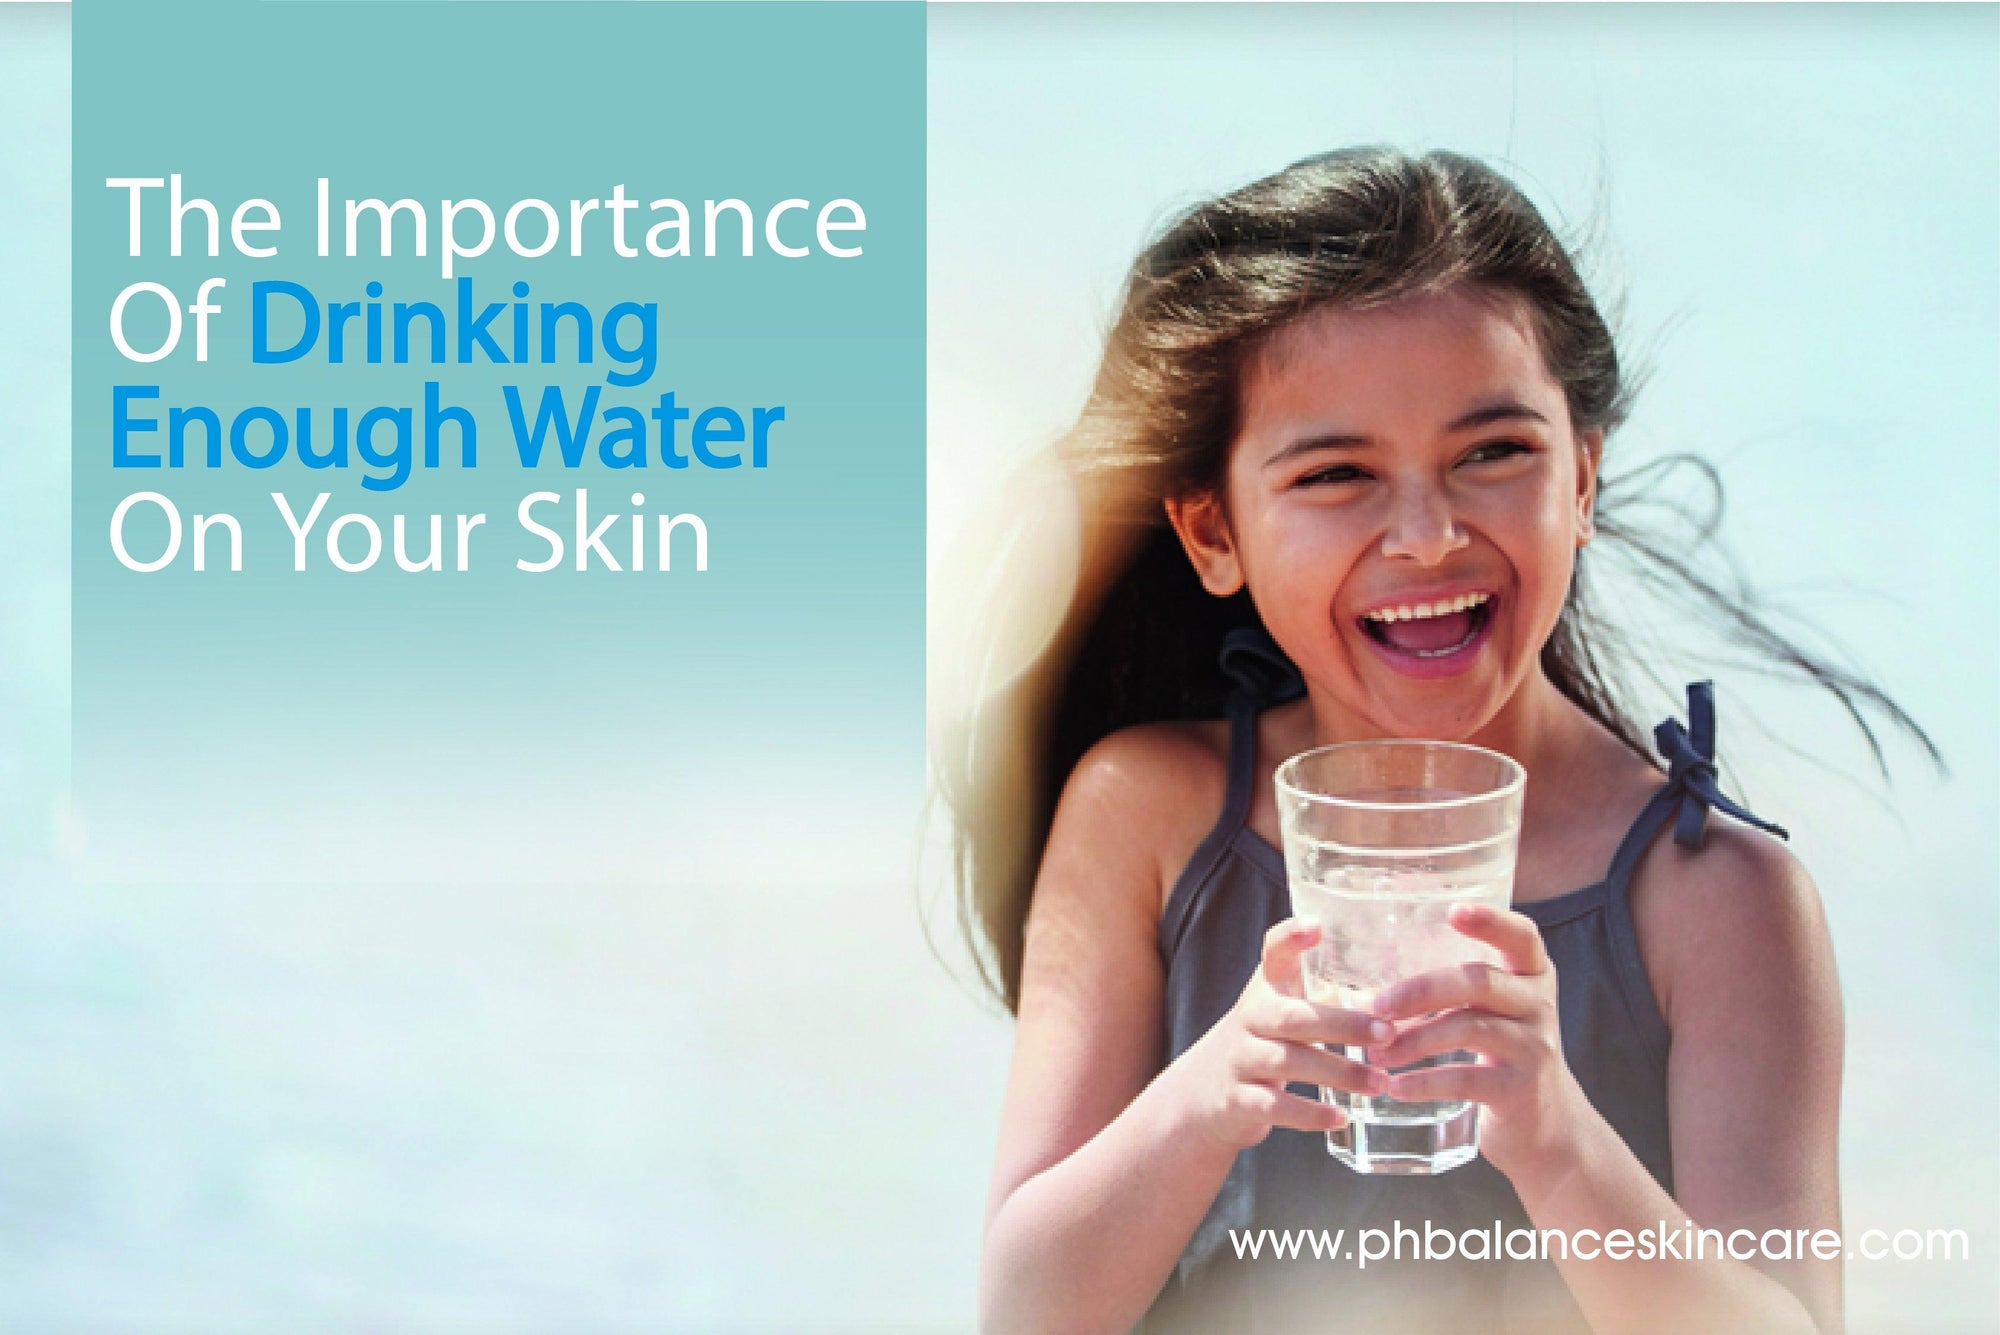 The Importance Of Drinking Enough Water On Your Skin - pH Balance Skincare